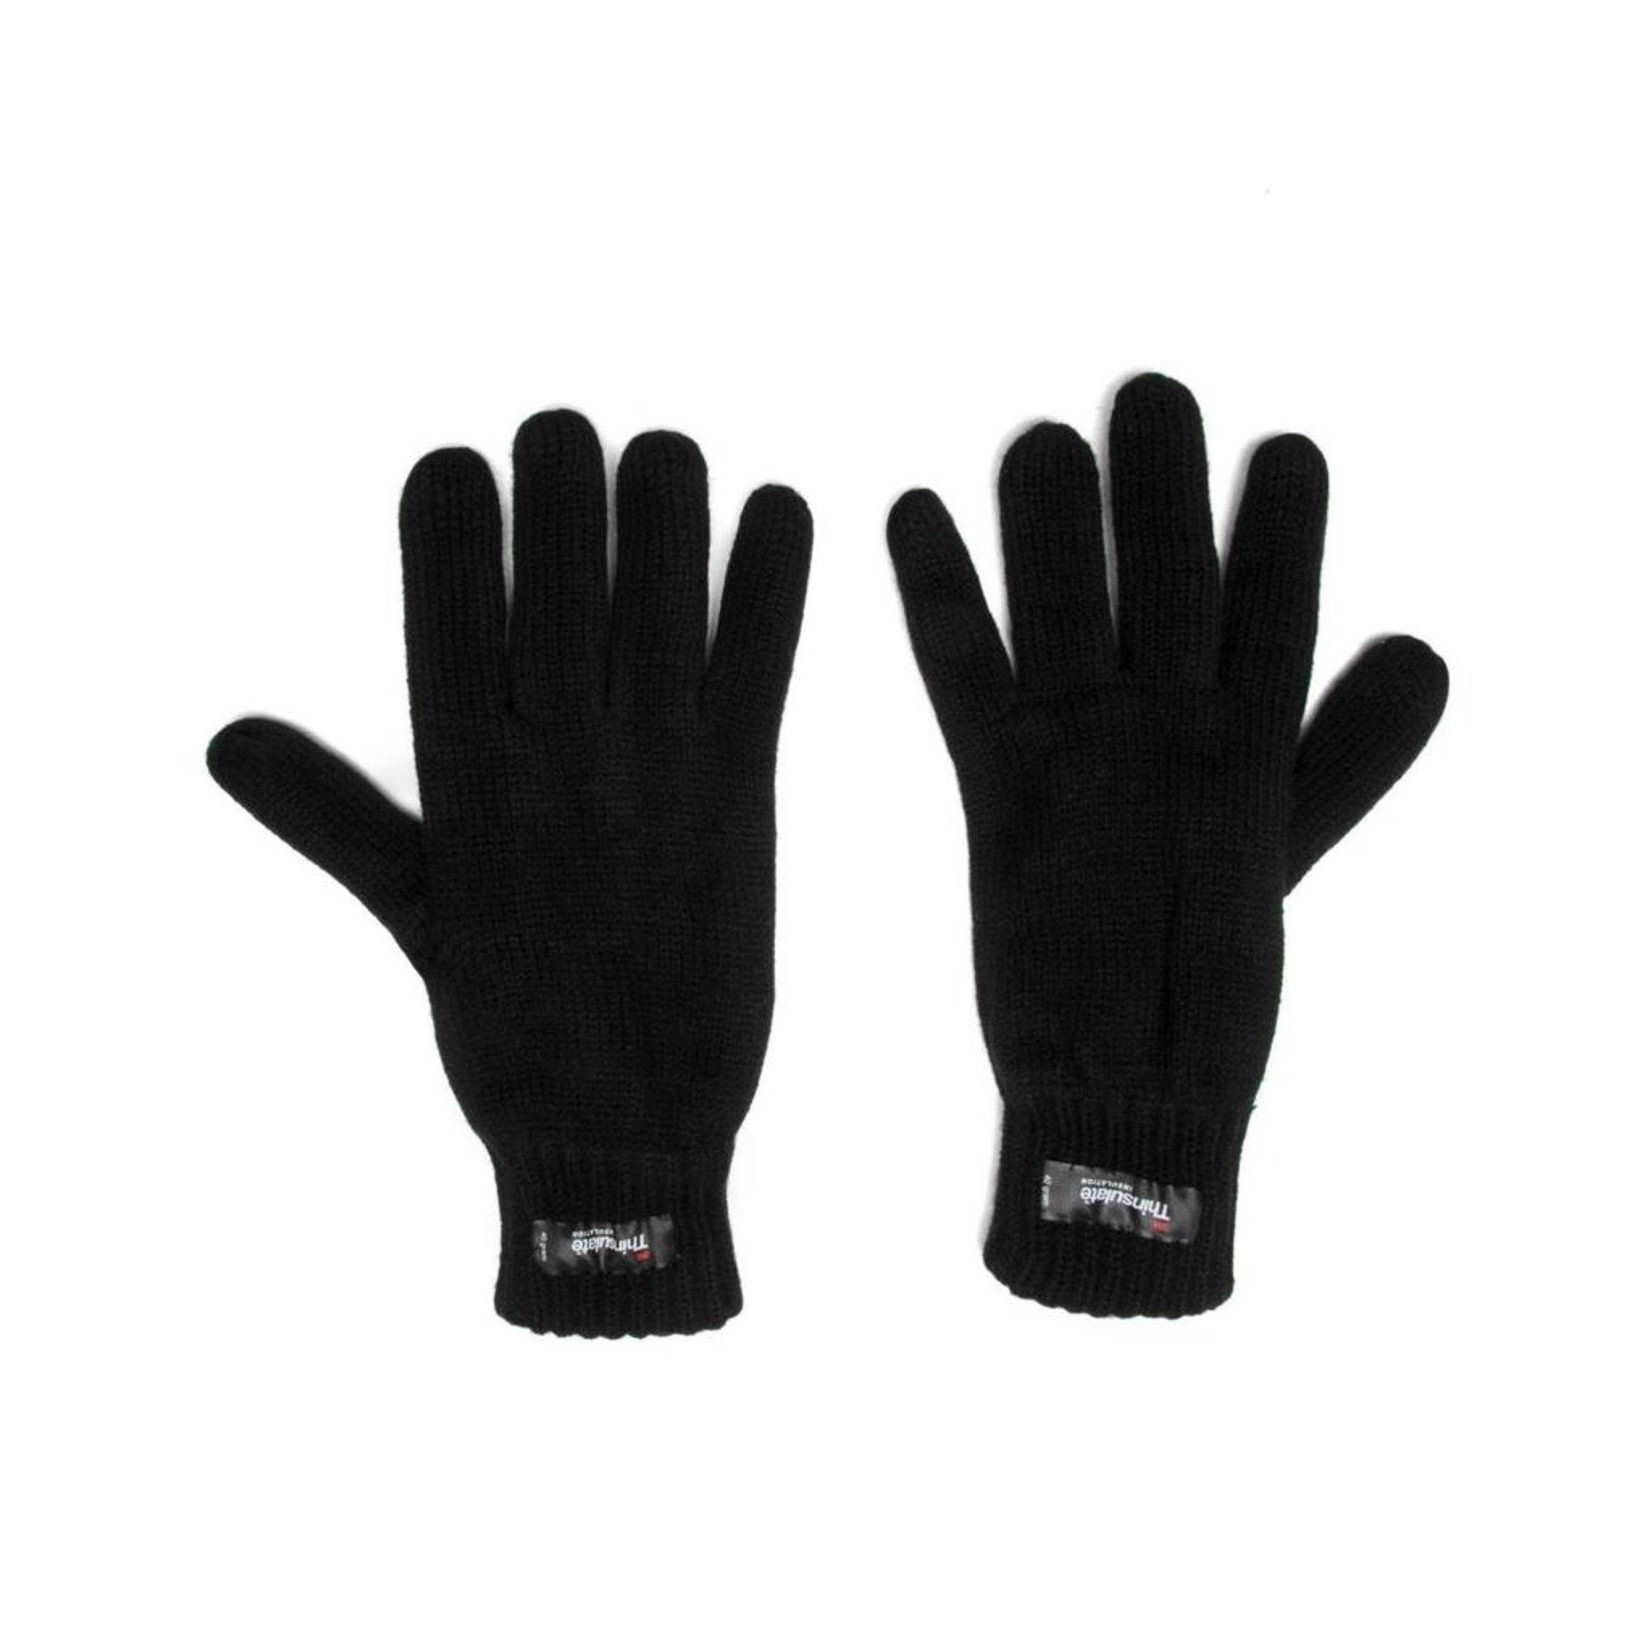 Albee 86757 Ragwool Thinsulate Gloves - 2 Colors